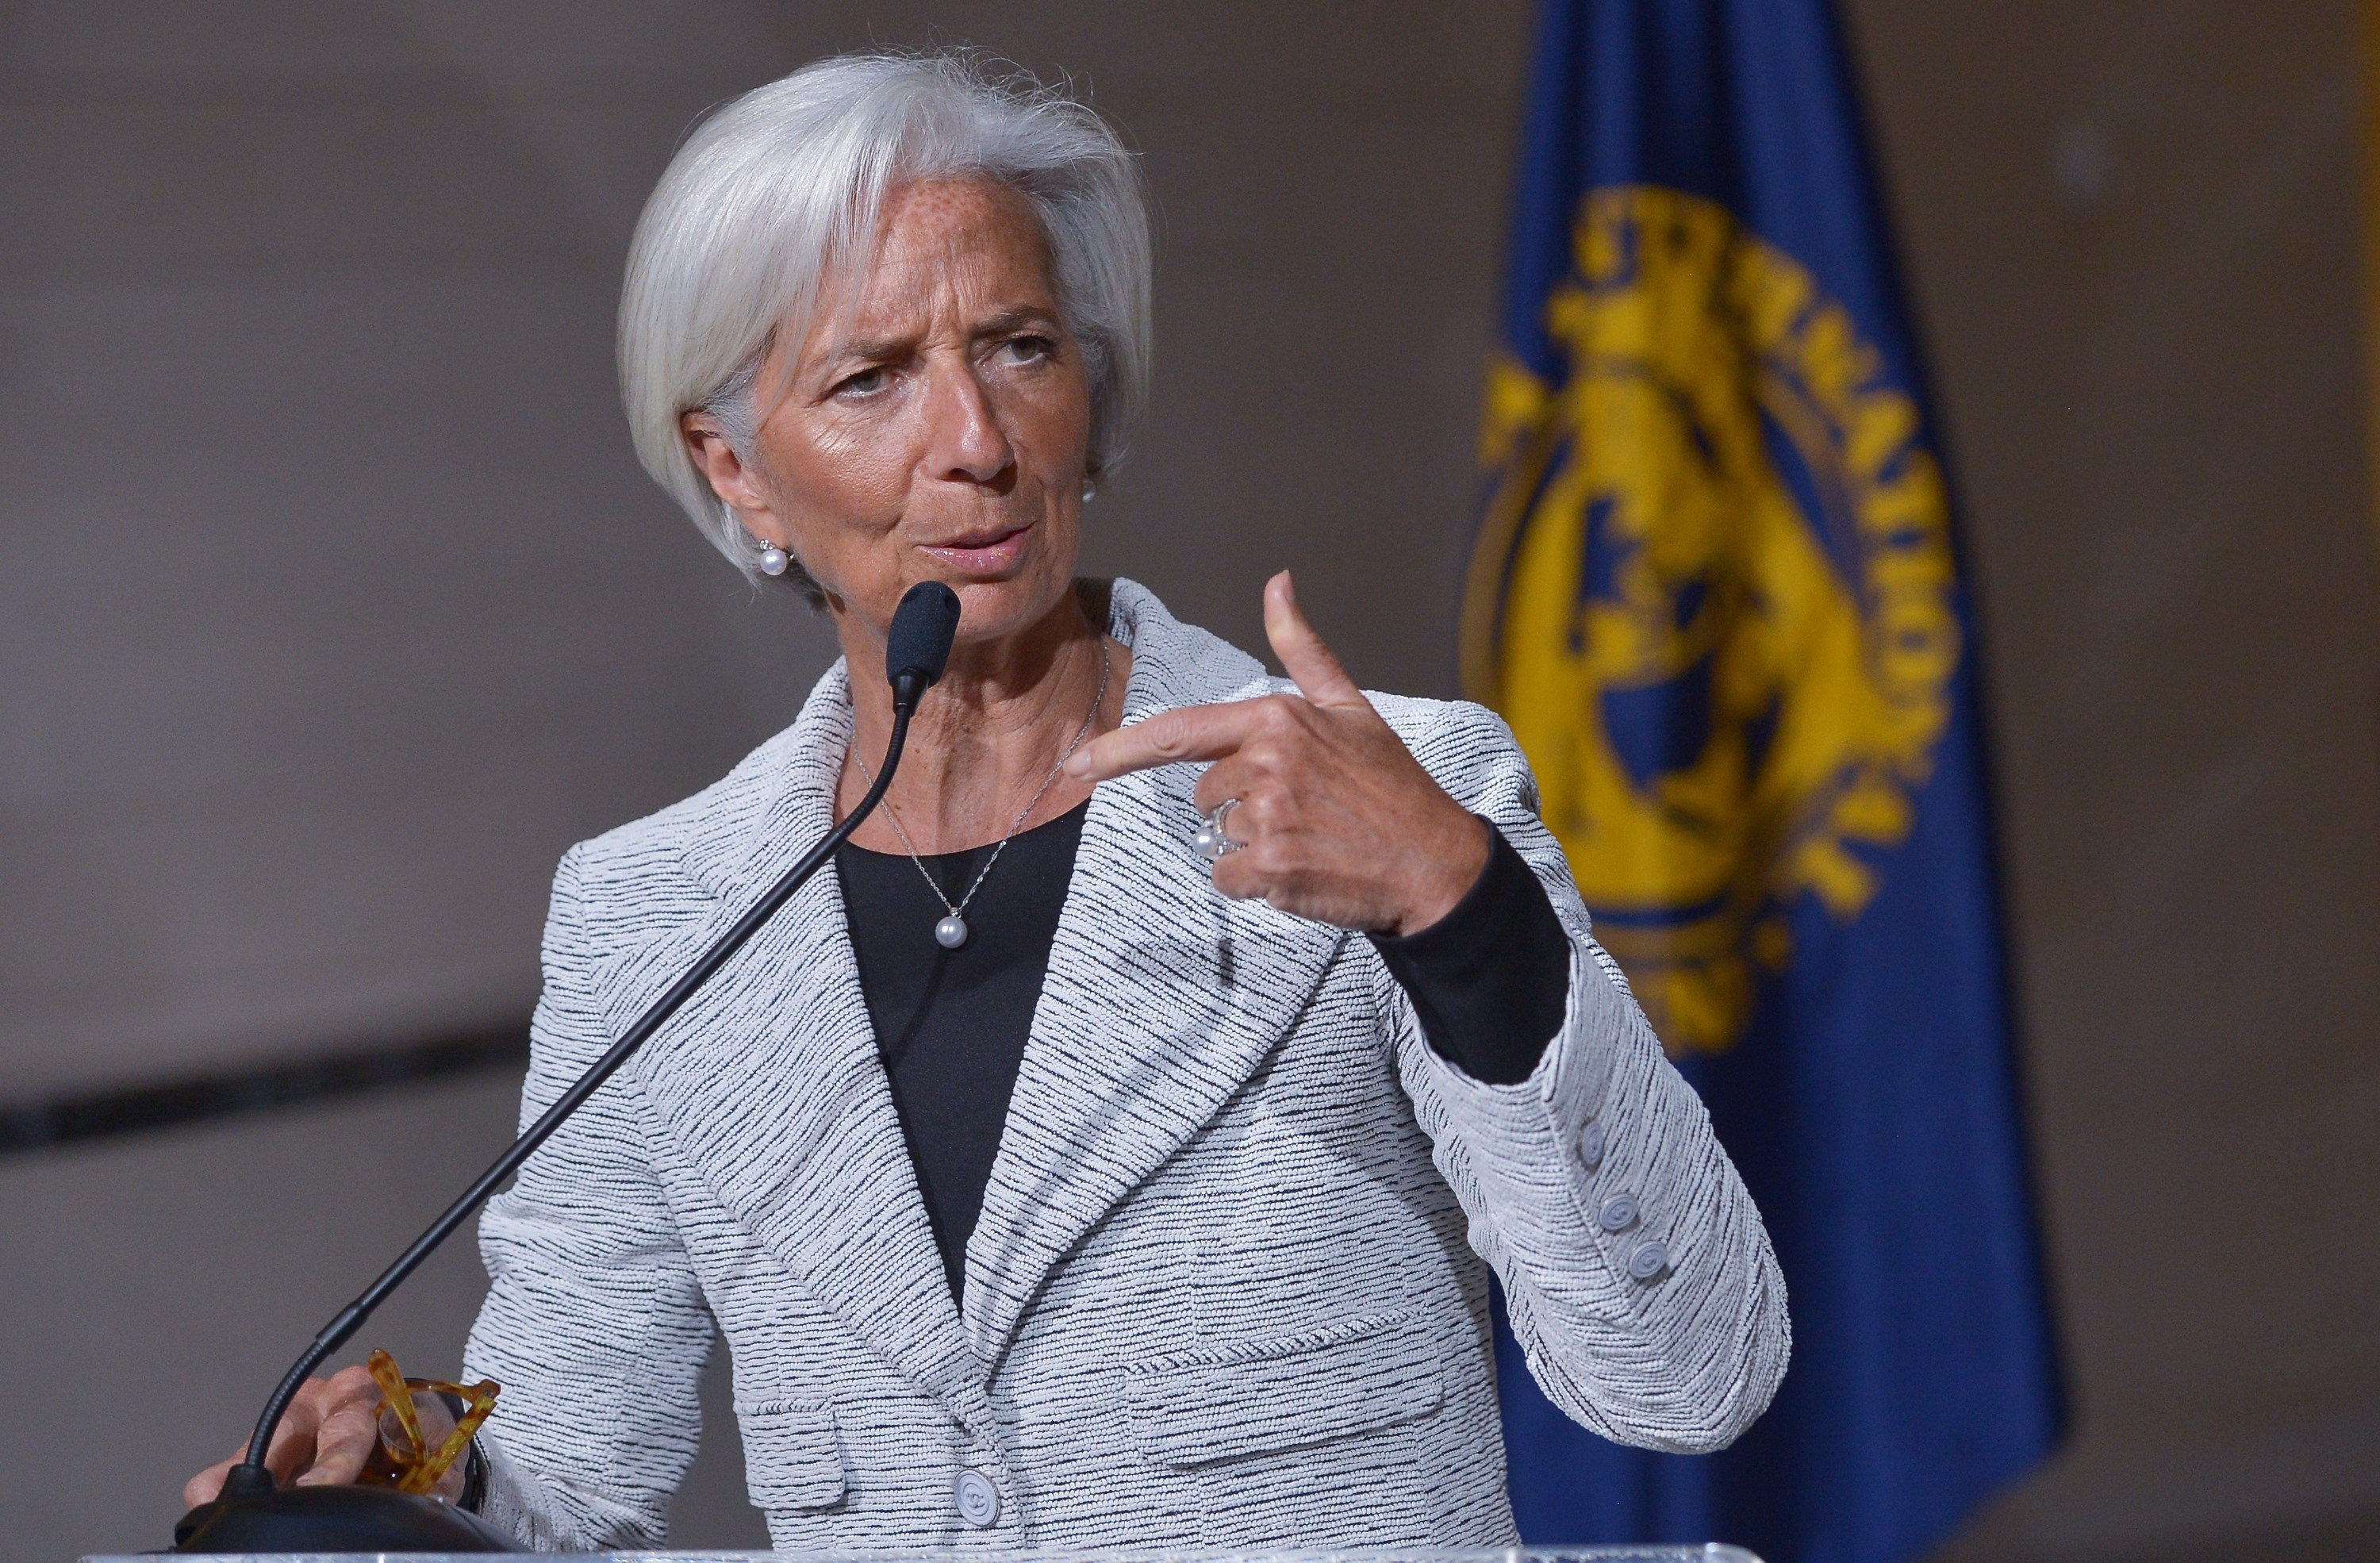 International Monetary Fund Managing Director Christine Lagarde speaks following an IMF board meeting on Ukraine on April 30, 2014 at IMF Headquarters in Washington, DC.  (AFP PHOTO/Mandel NGAN)